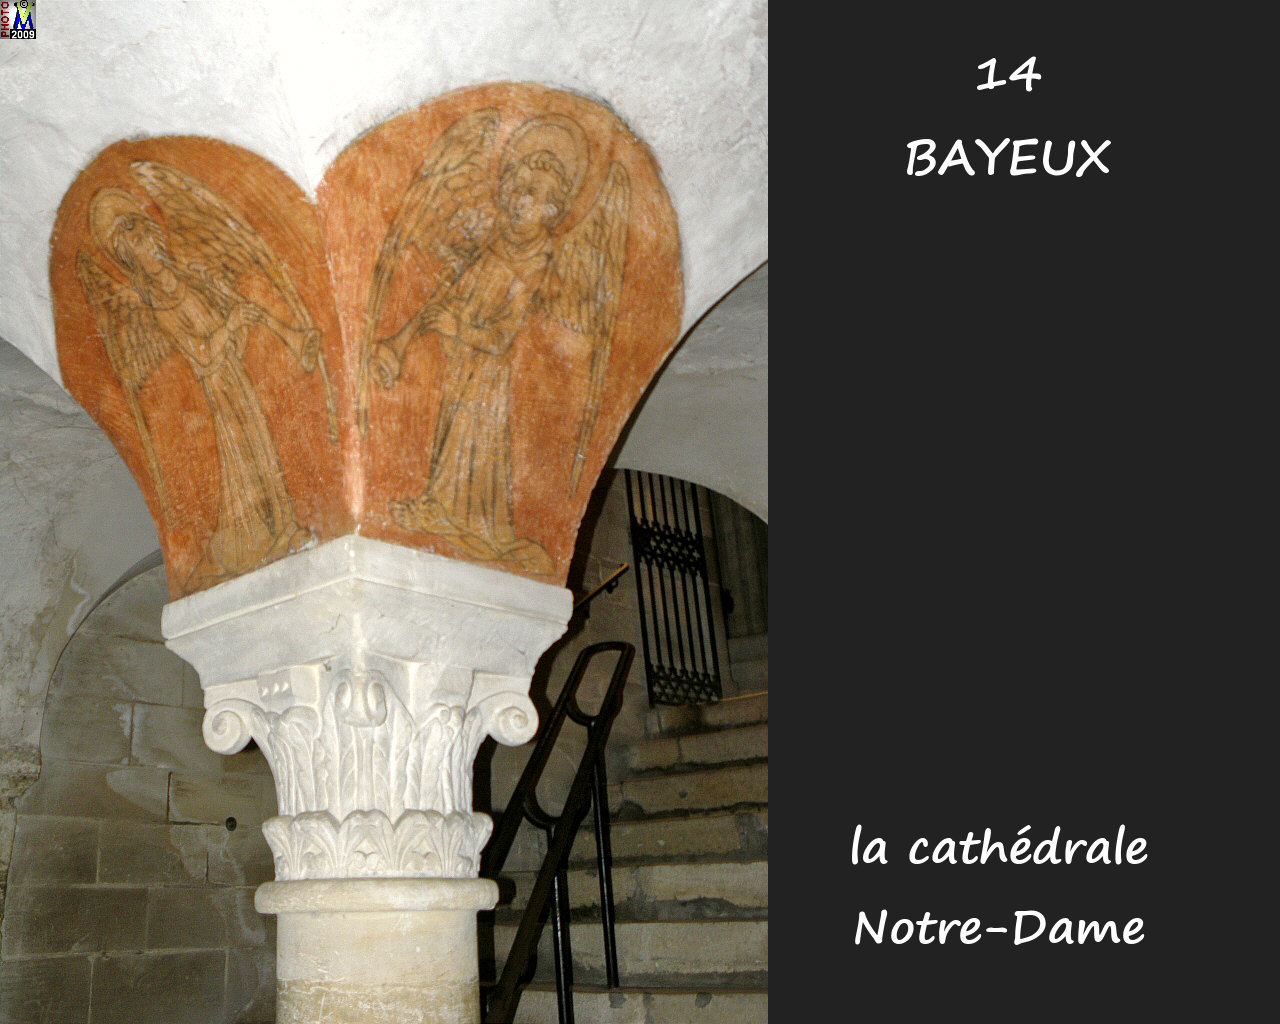 14BAYEUX_cathedrale_314.jpg